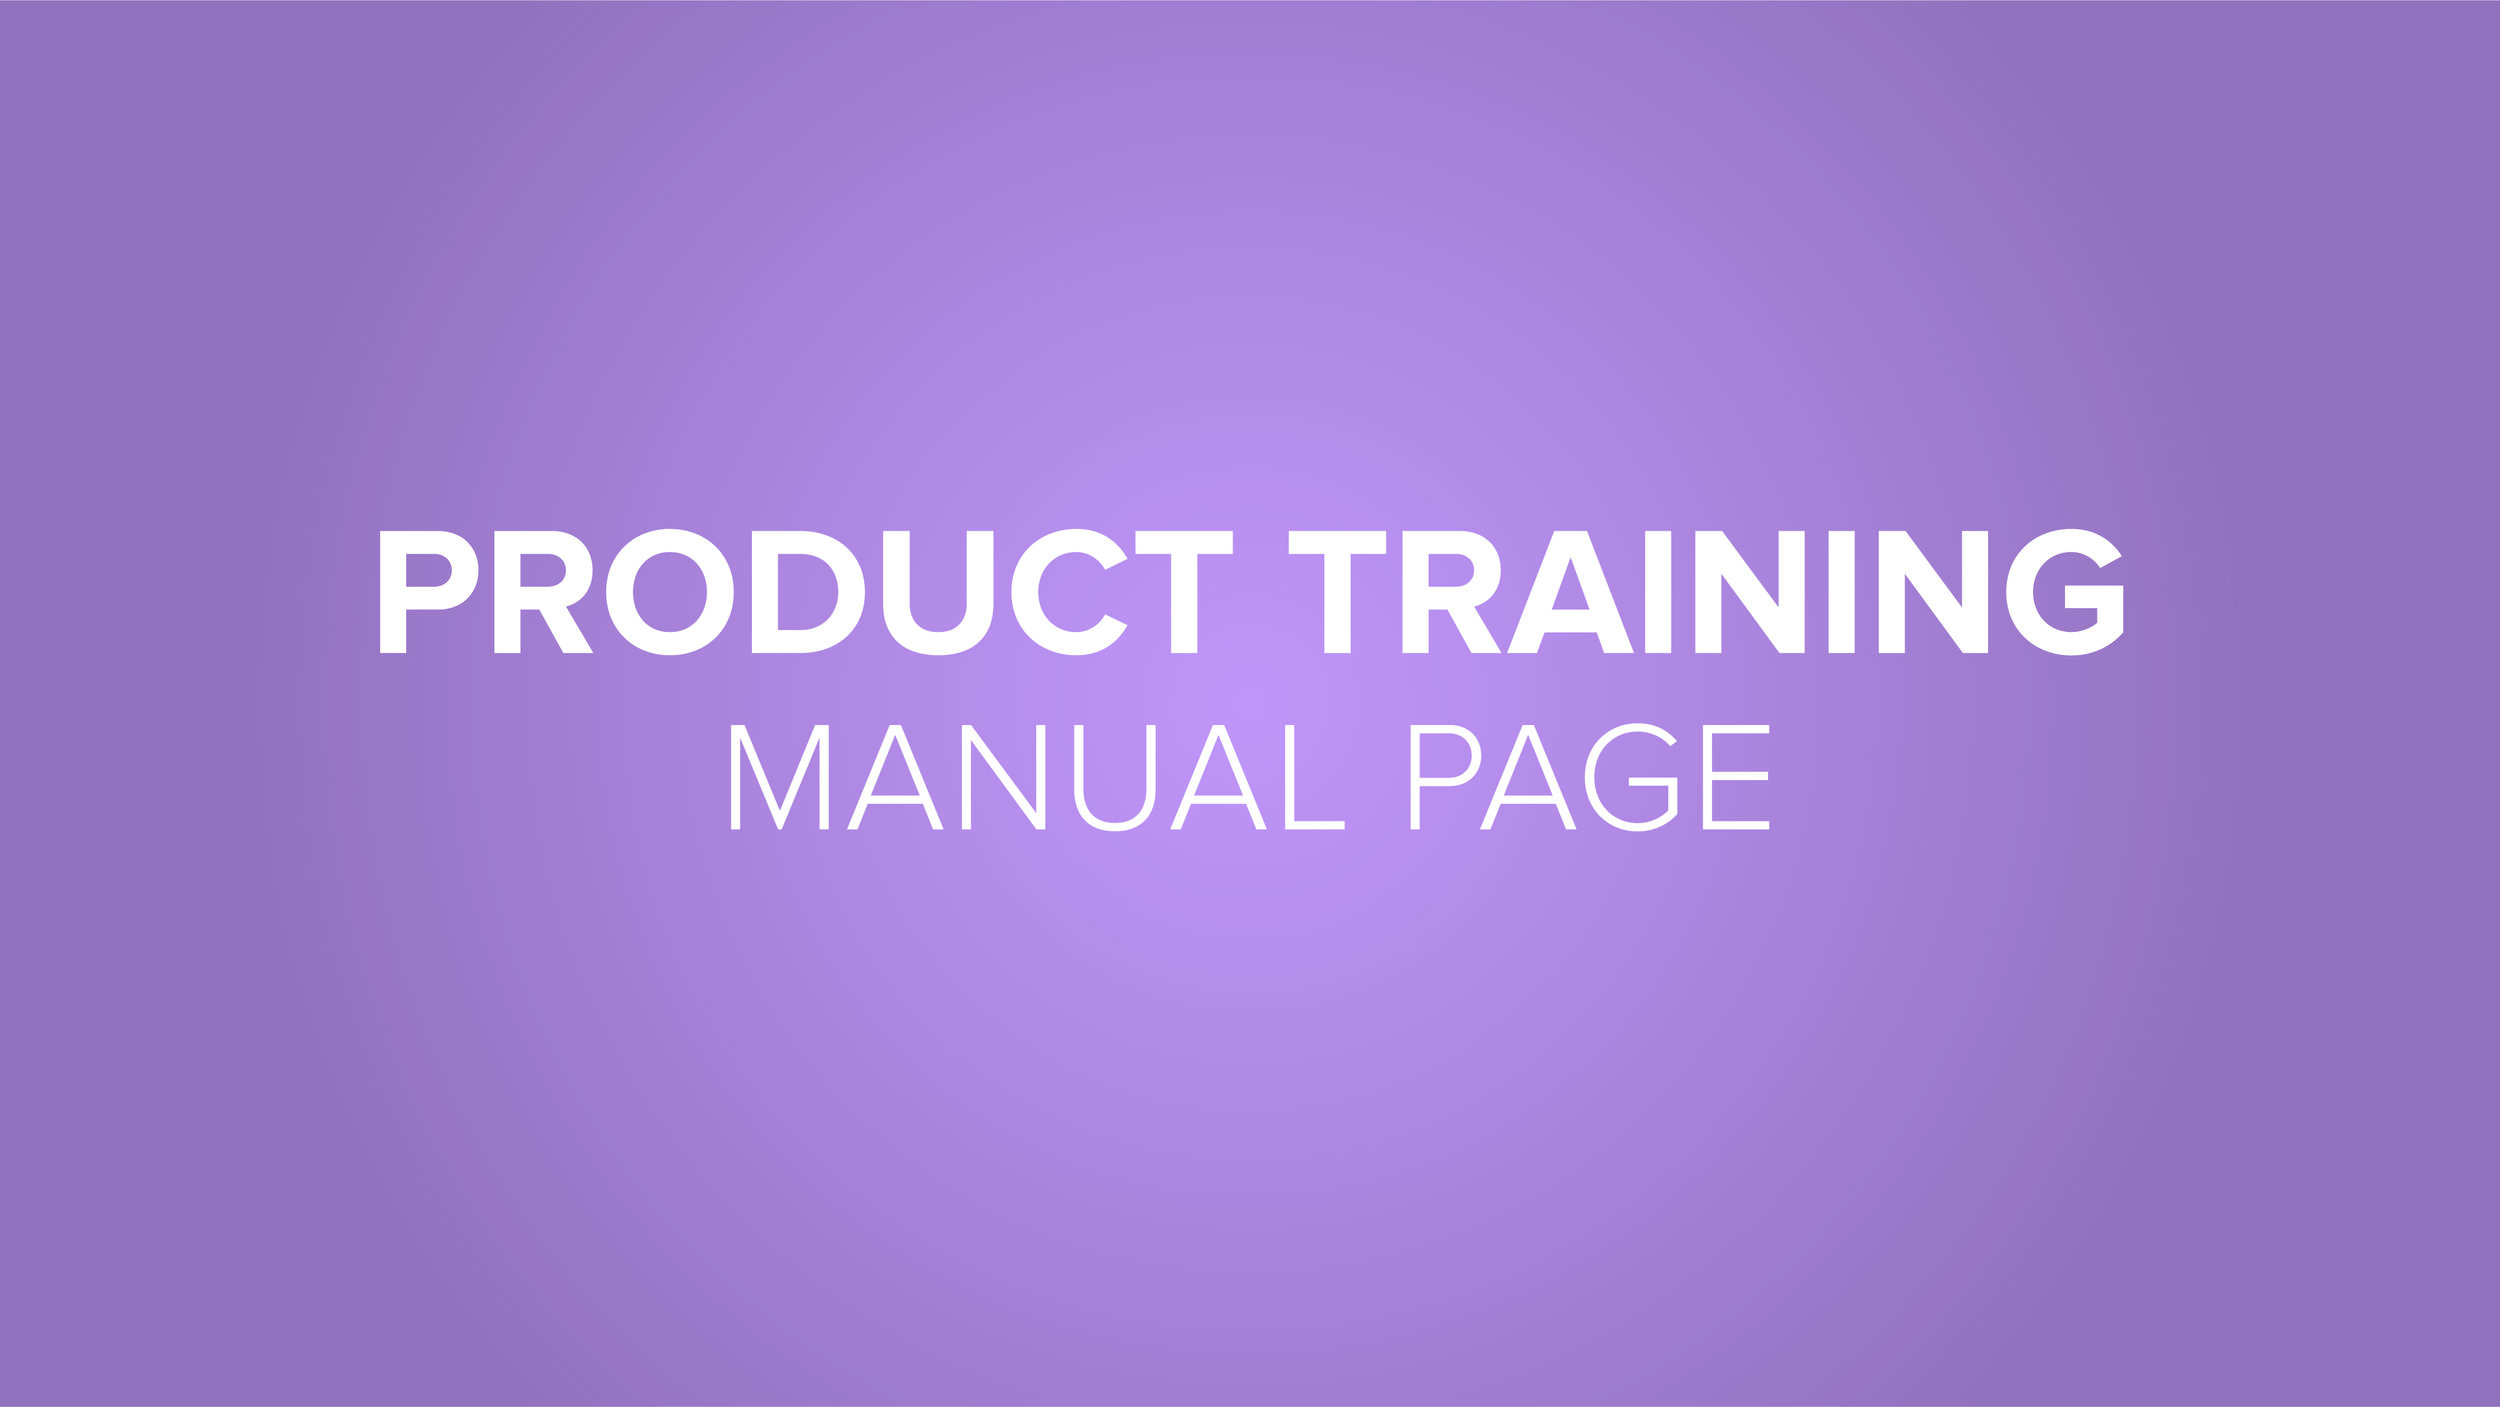 Sales Central - Agape Package Buttons_Training Manual Pages.jpg